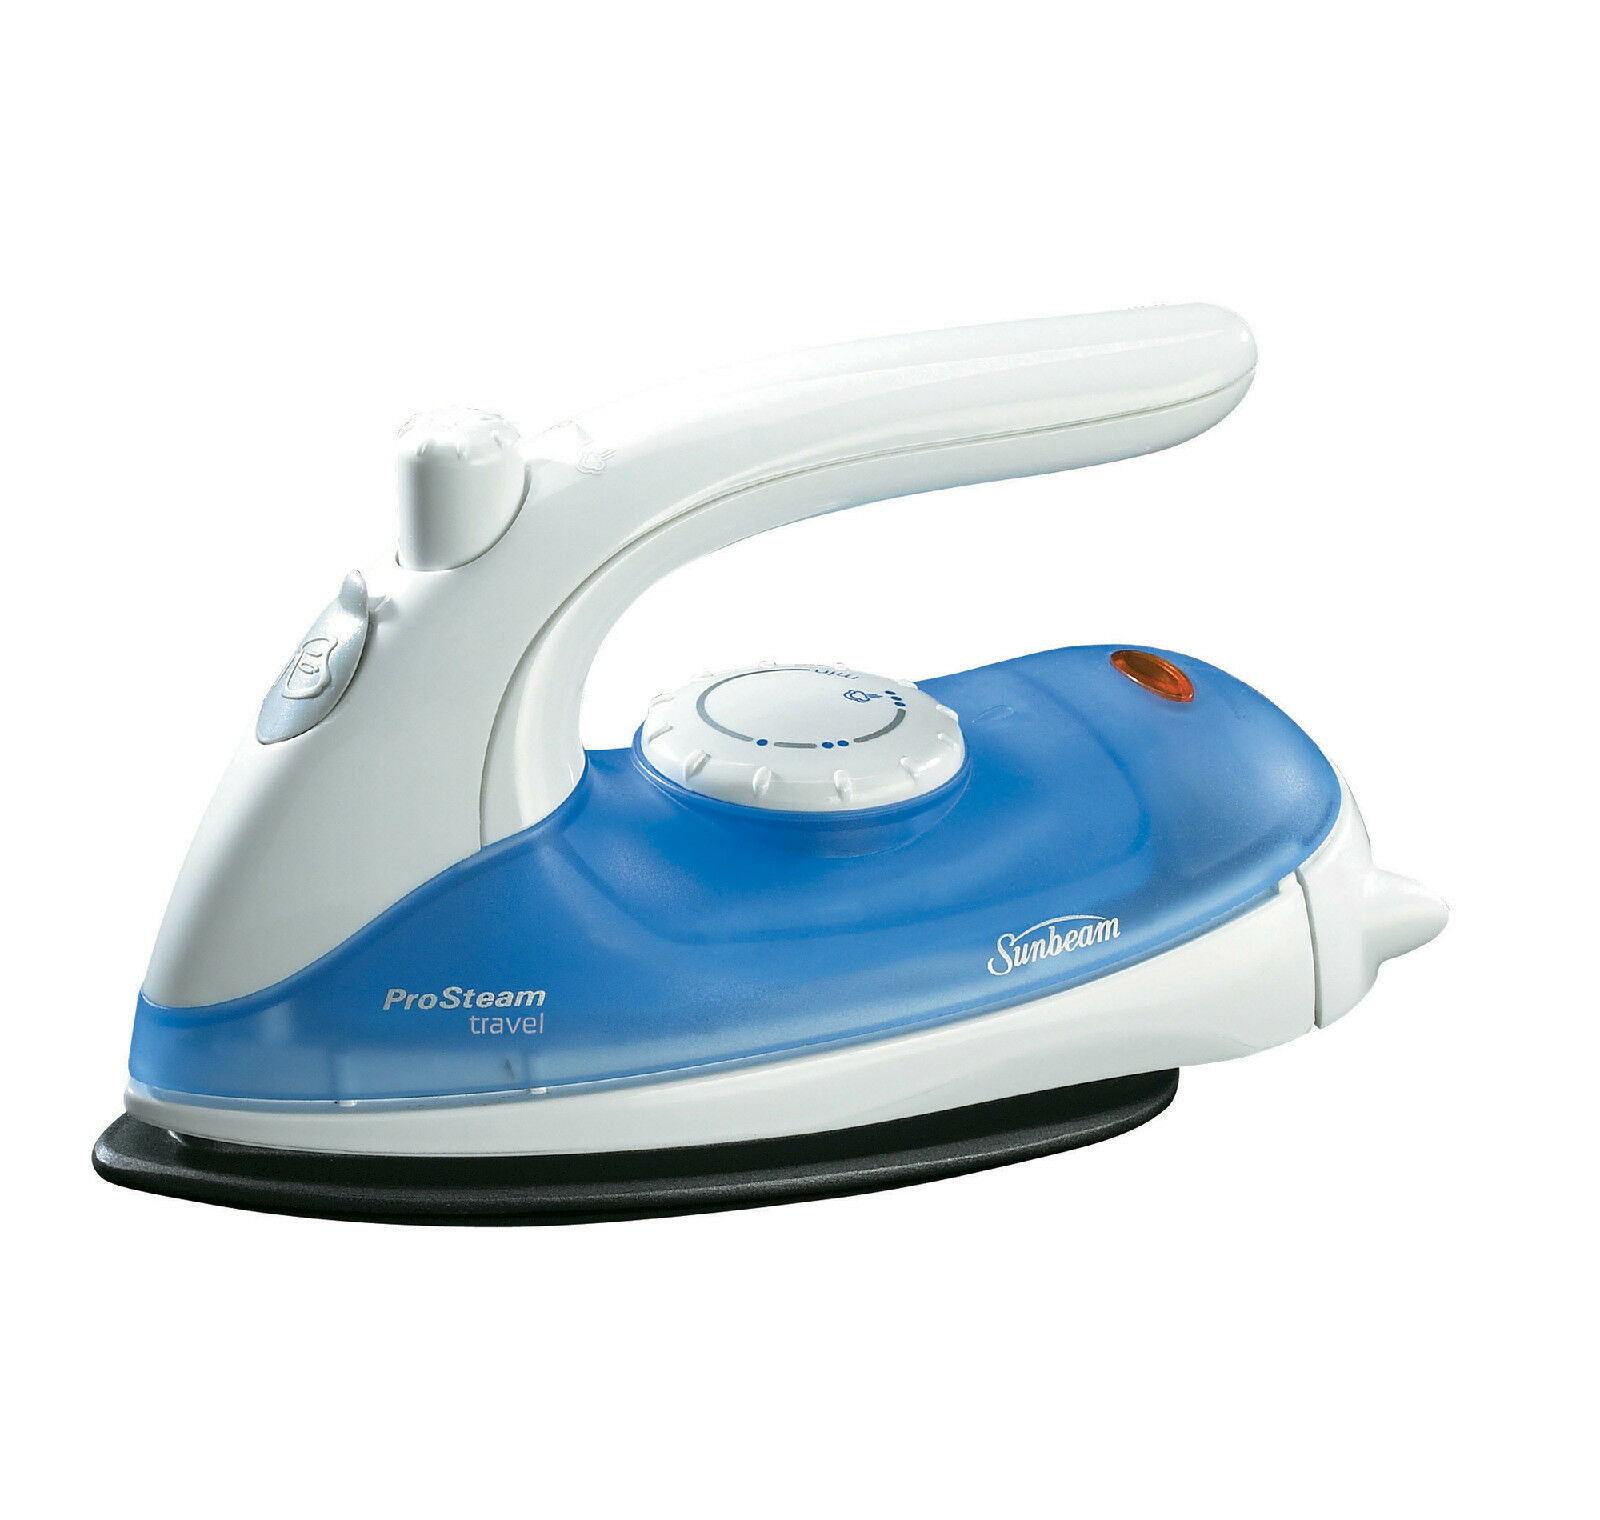 Sunbeam SR2300 Pro Steam® Travel Iron - Handy compact design, ideal ...